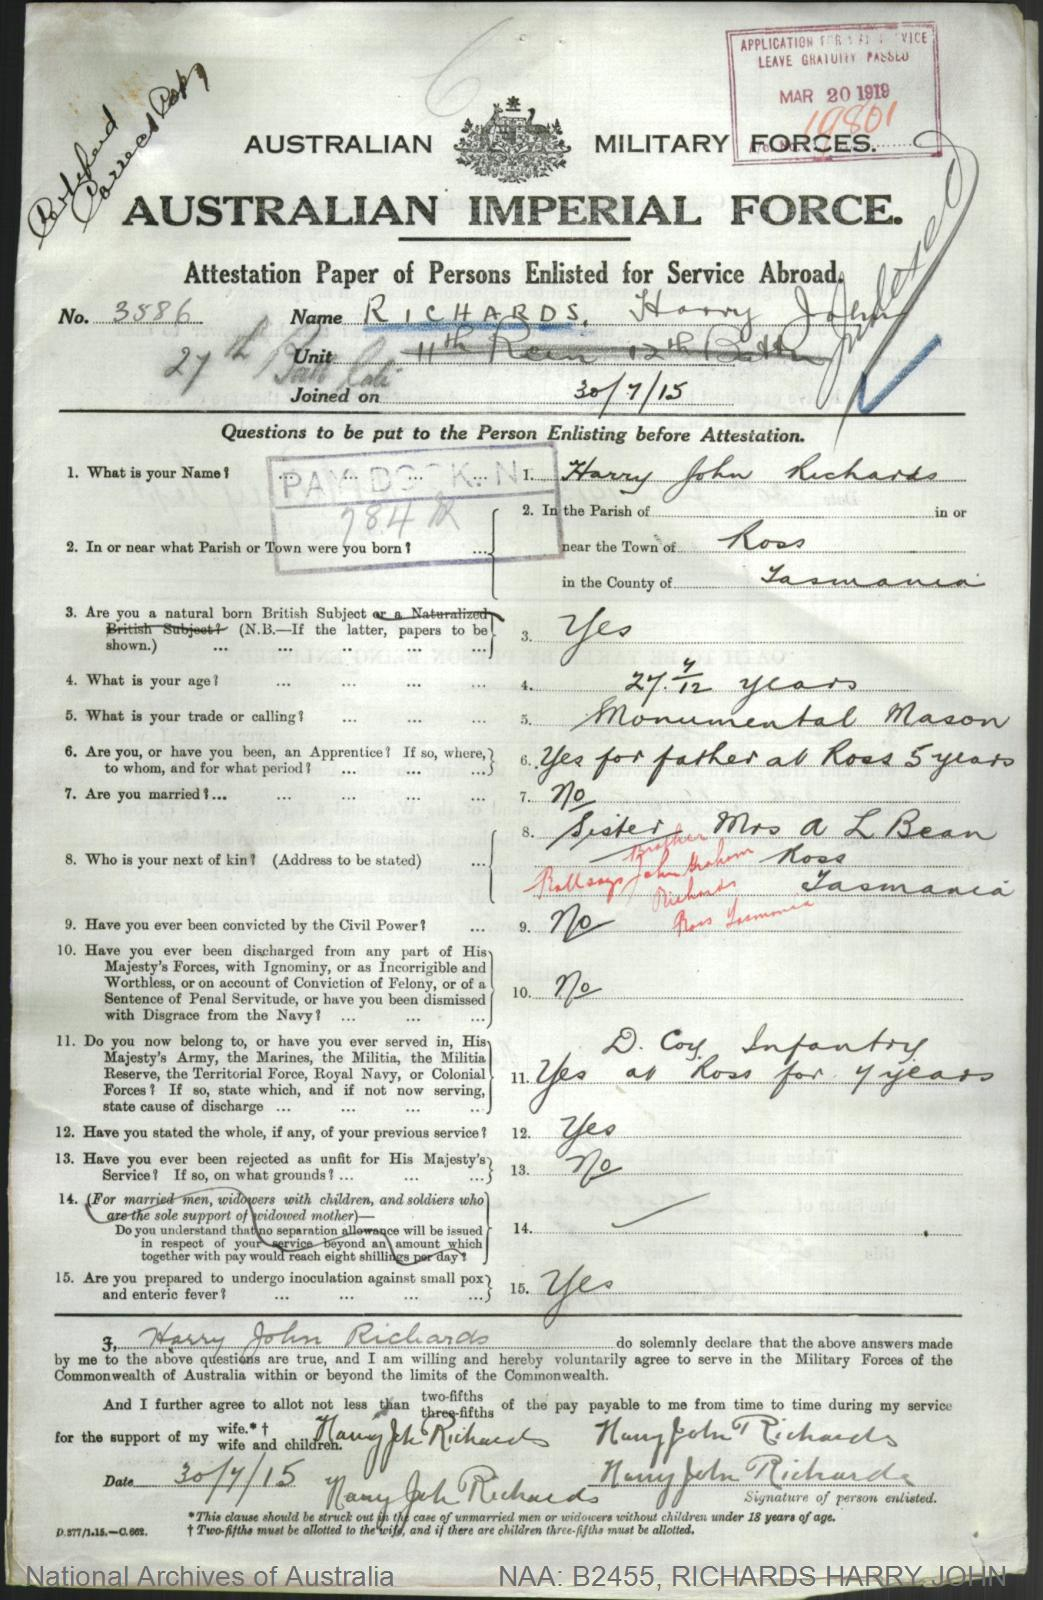 RICHARDS Harry John : Service Number - 3586 : Place of Birth - Ross TAS : Place of Enlistment - Claremont TAS : Next of Kin - (Brother) RICHARDS John Graham